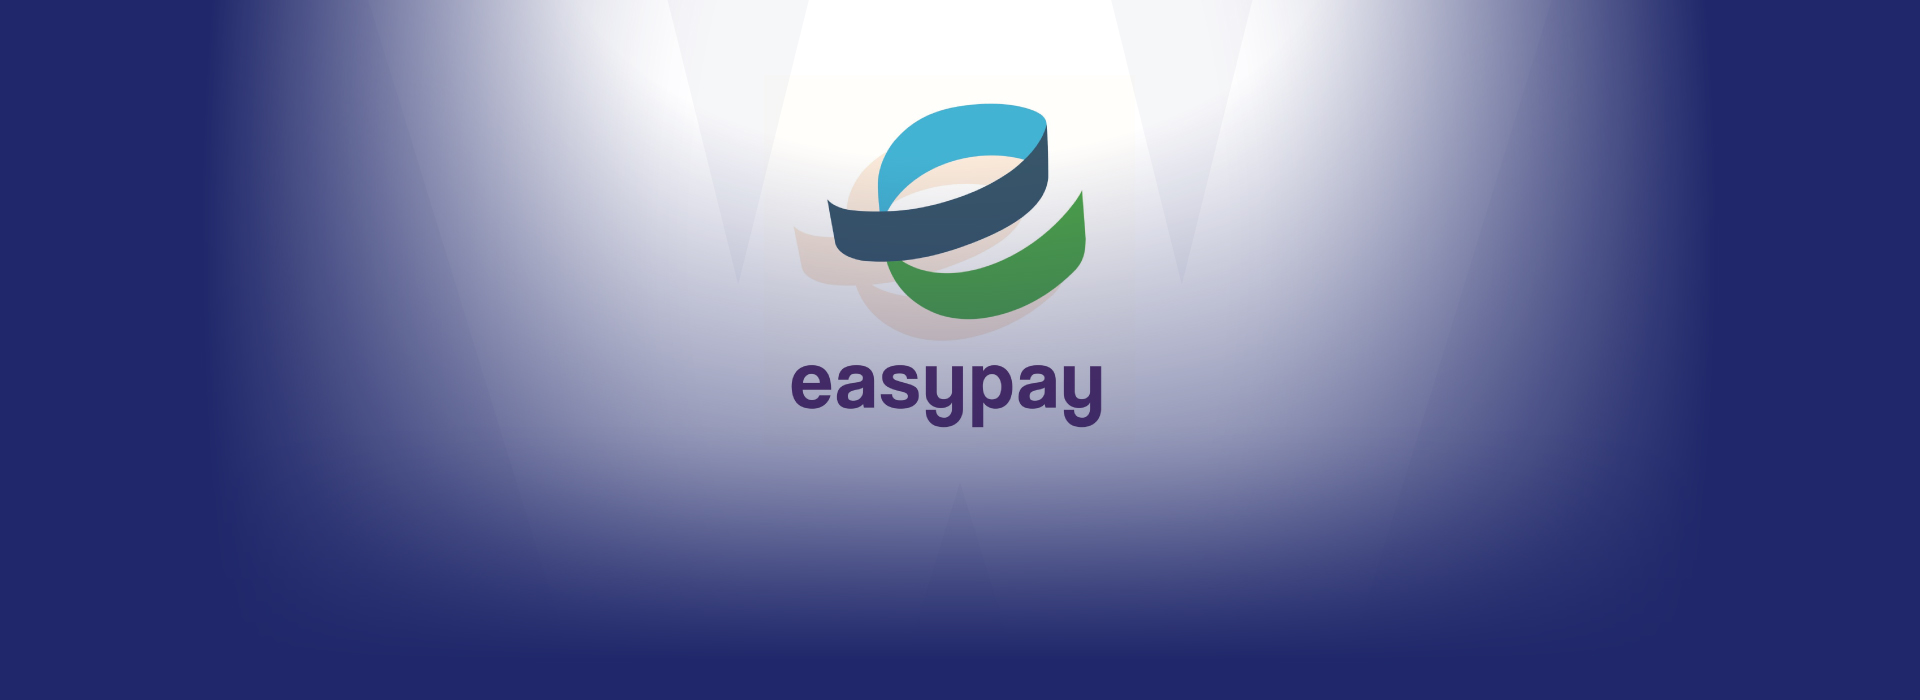 Easypay acquired